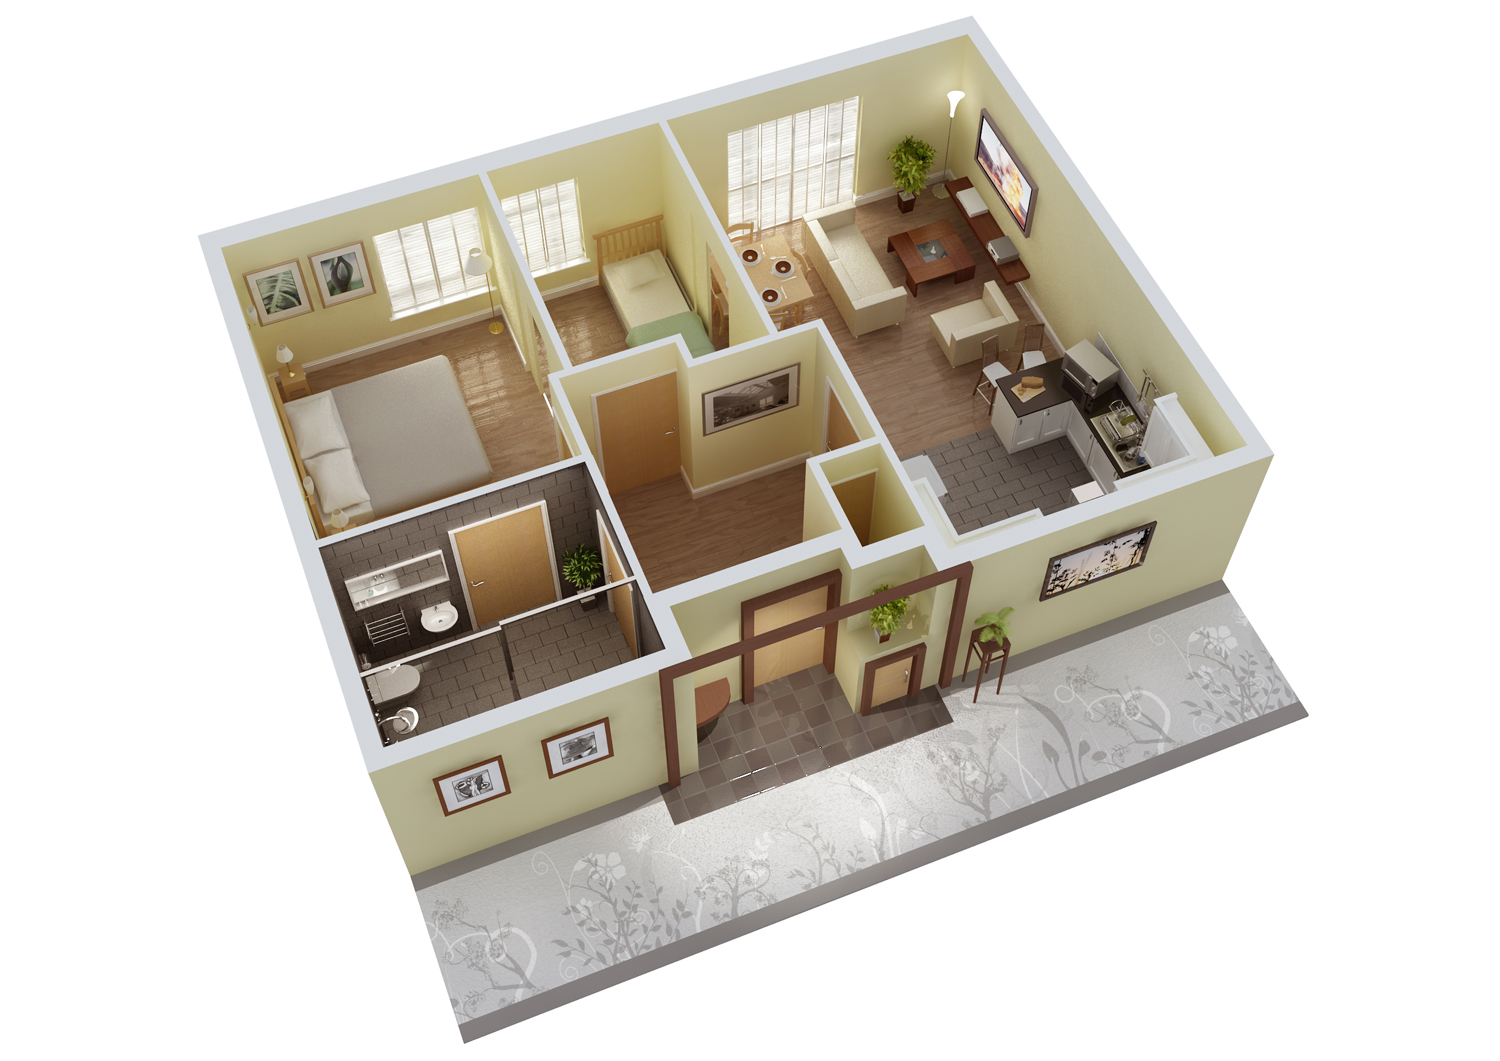 Mathematics resources project 3d floor plan Home layout planner